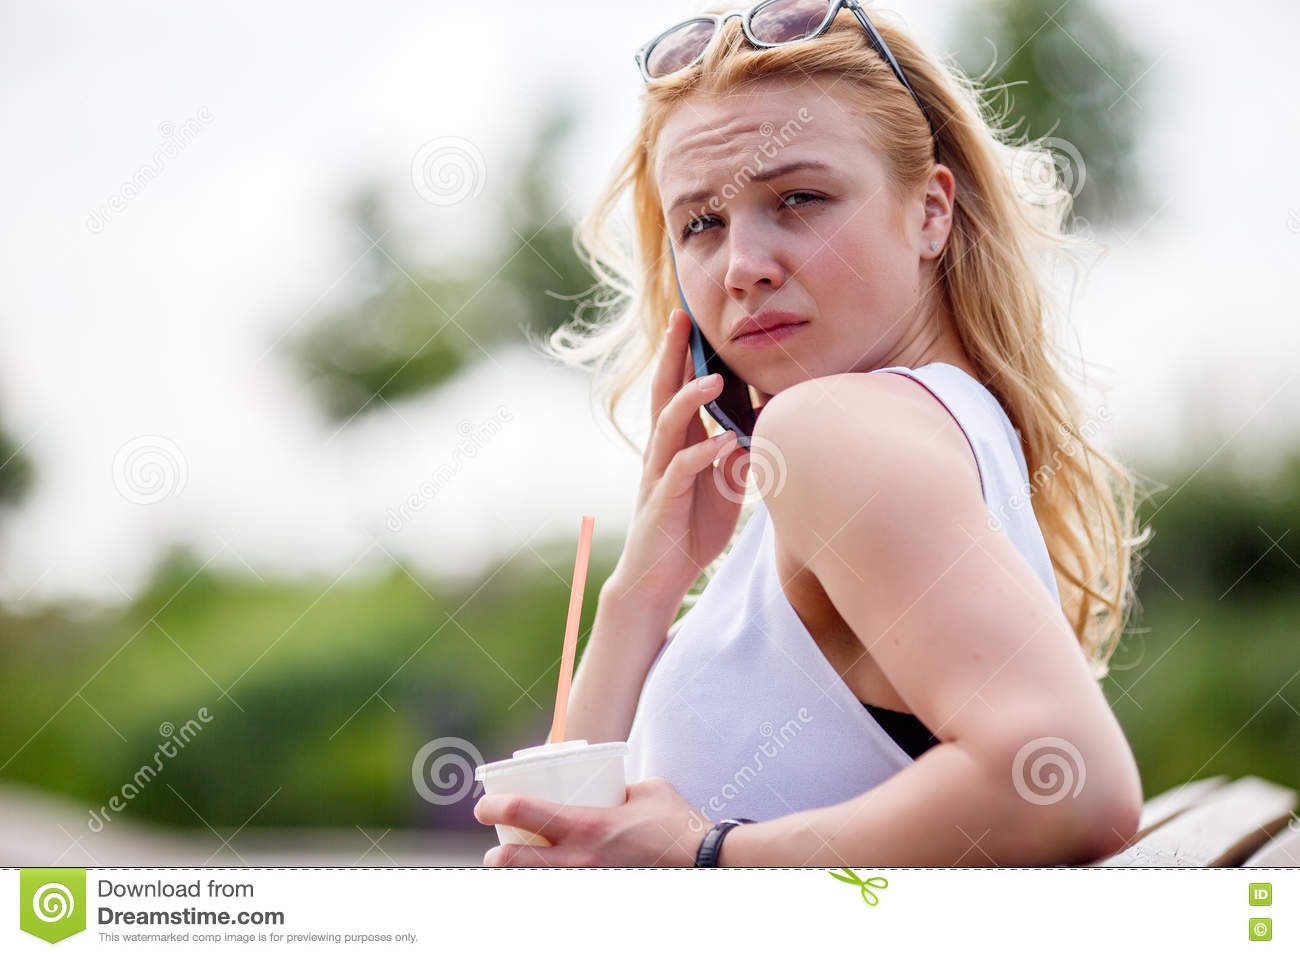 Pity, Young teen cell phone facial